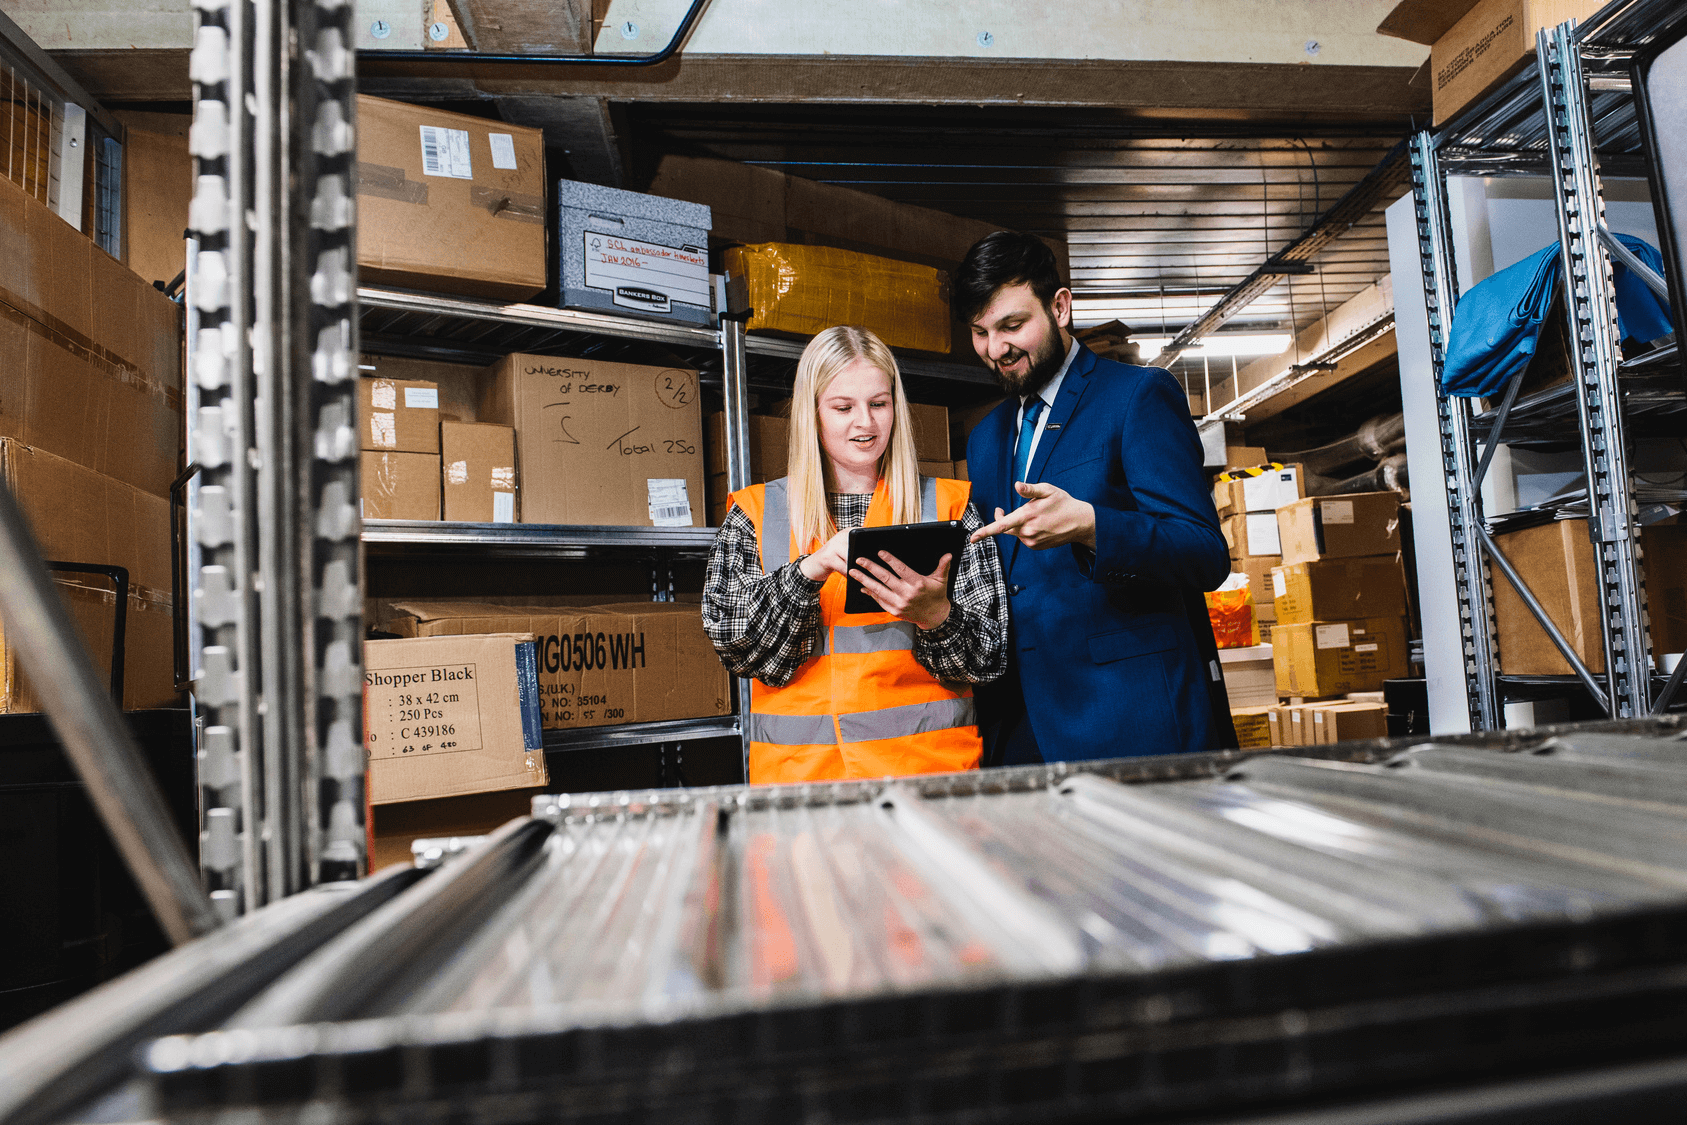 Two people are checking stock in a logistics warehouse